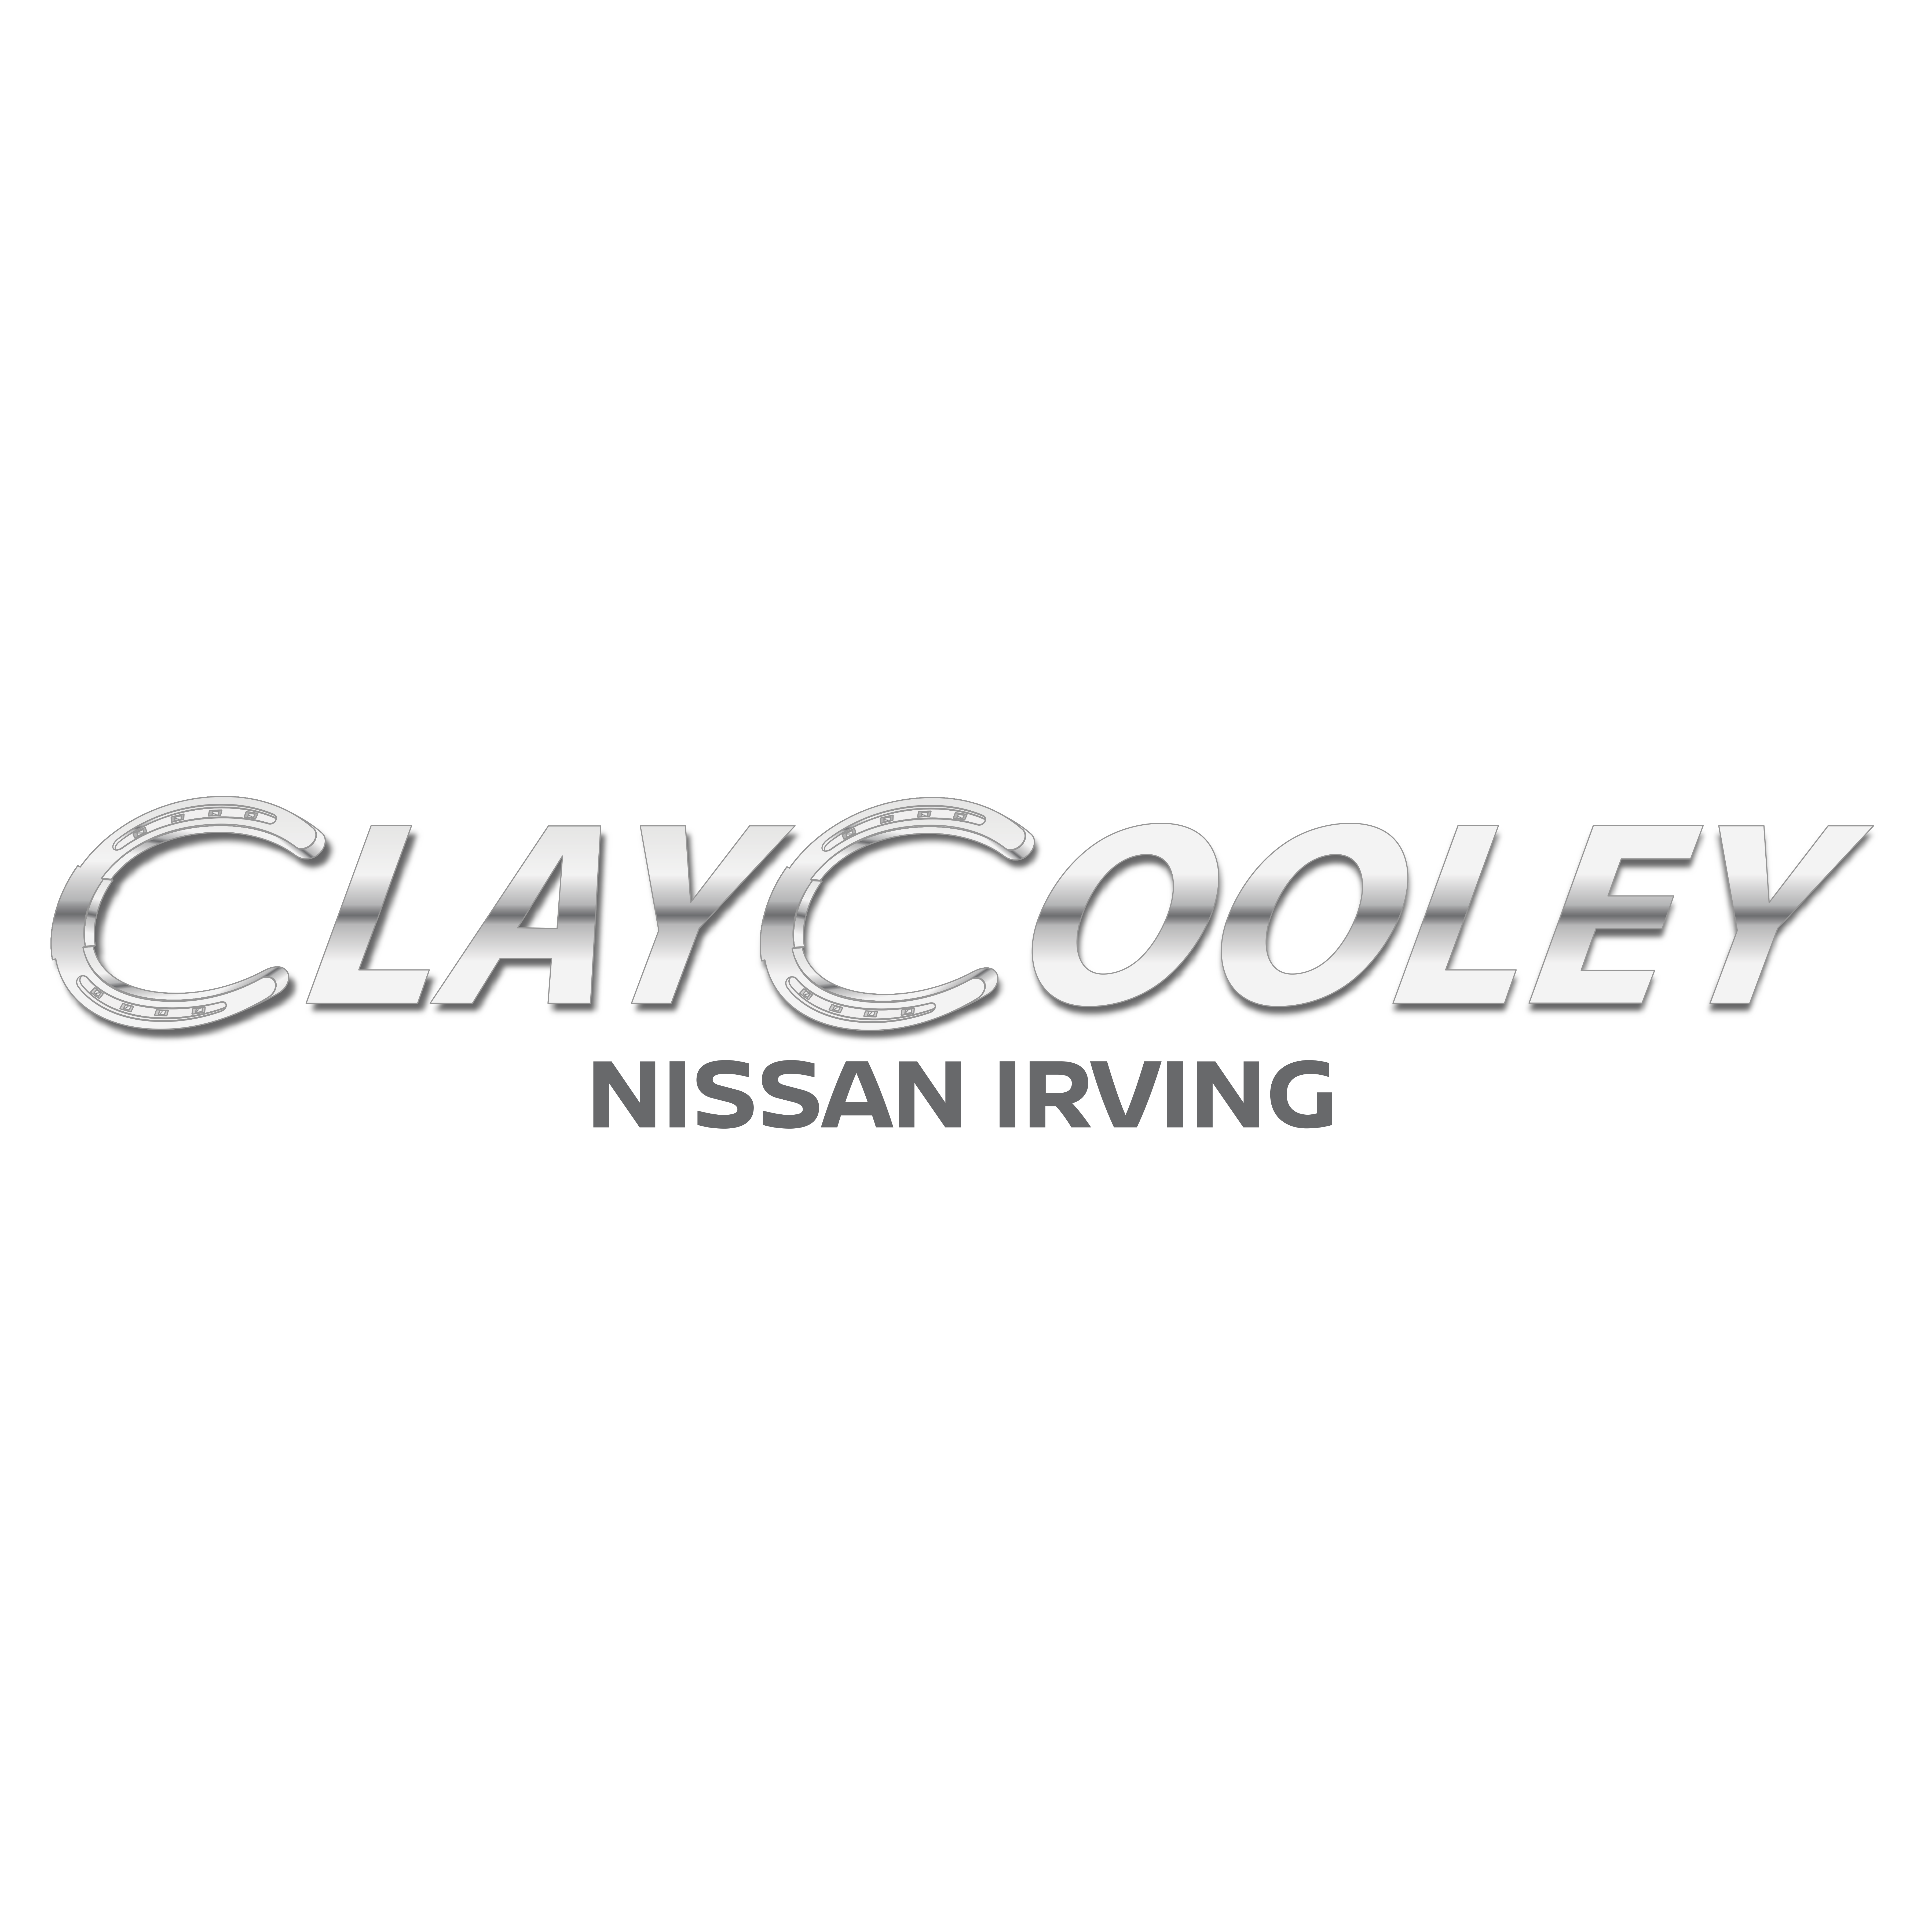 Clay Cooley Nissan >> Clay Cooley Nissan Of Irving 1500 E Airport Fwy Irving Tx